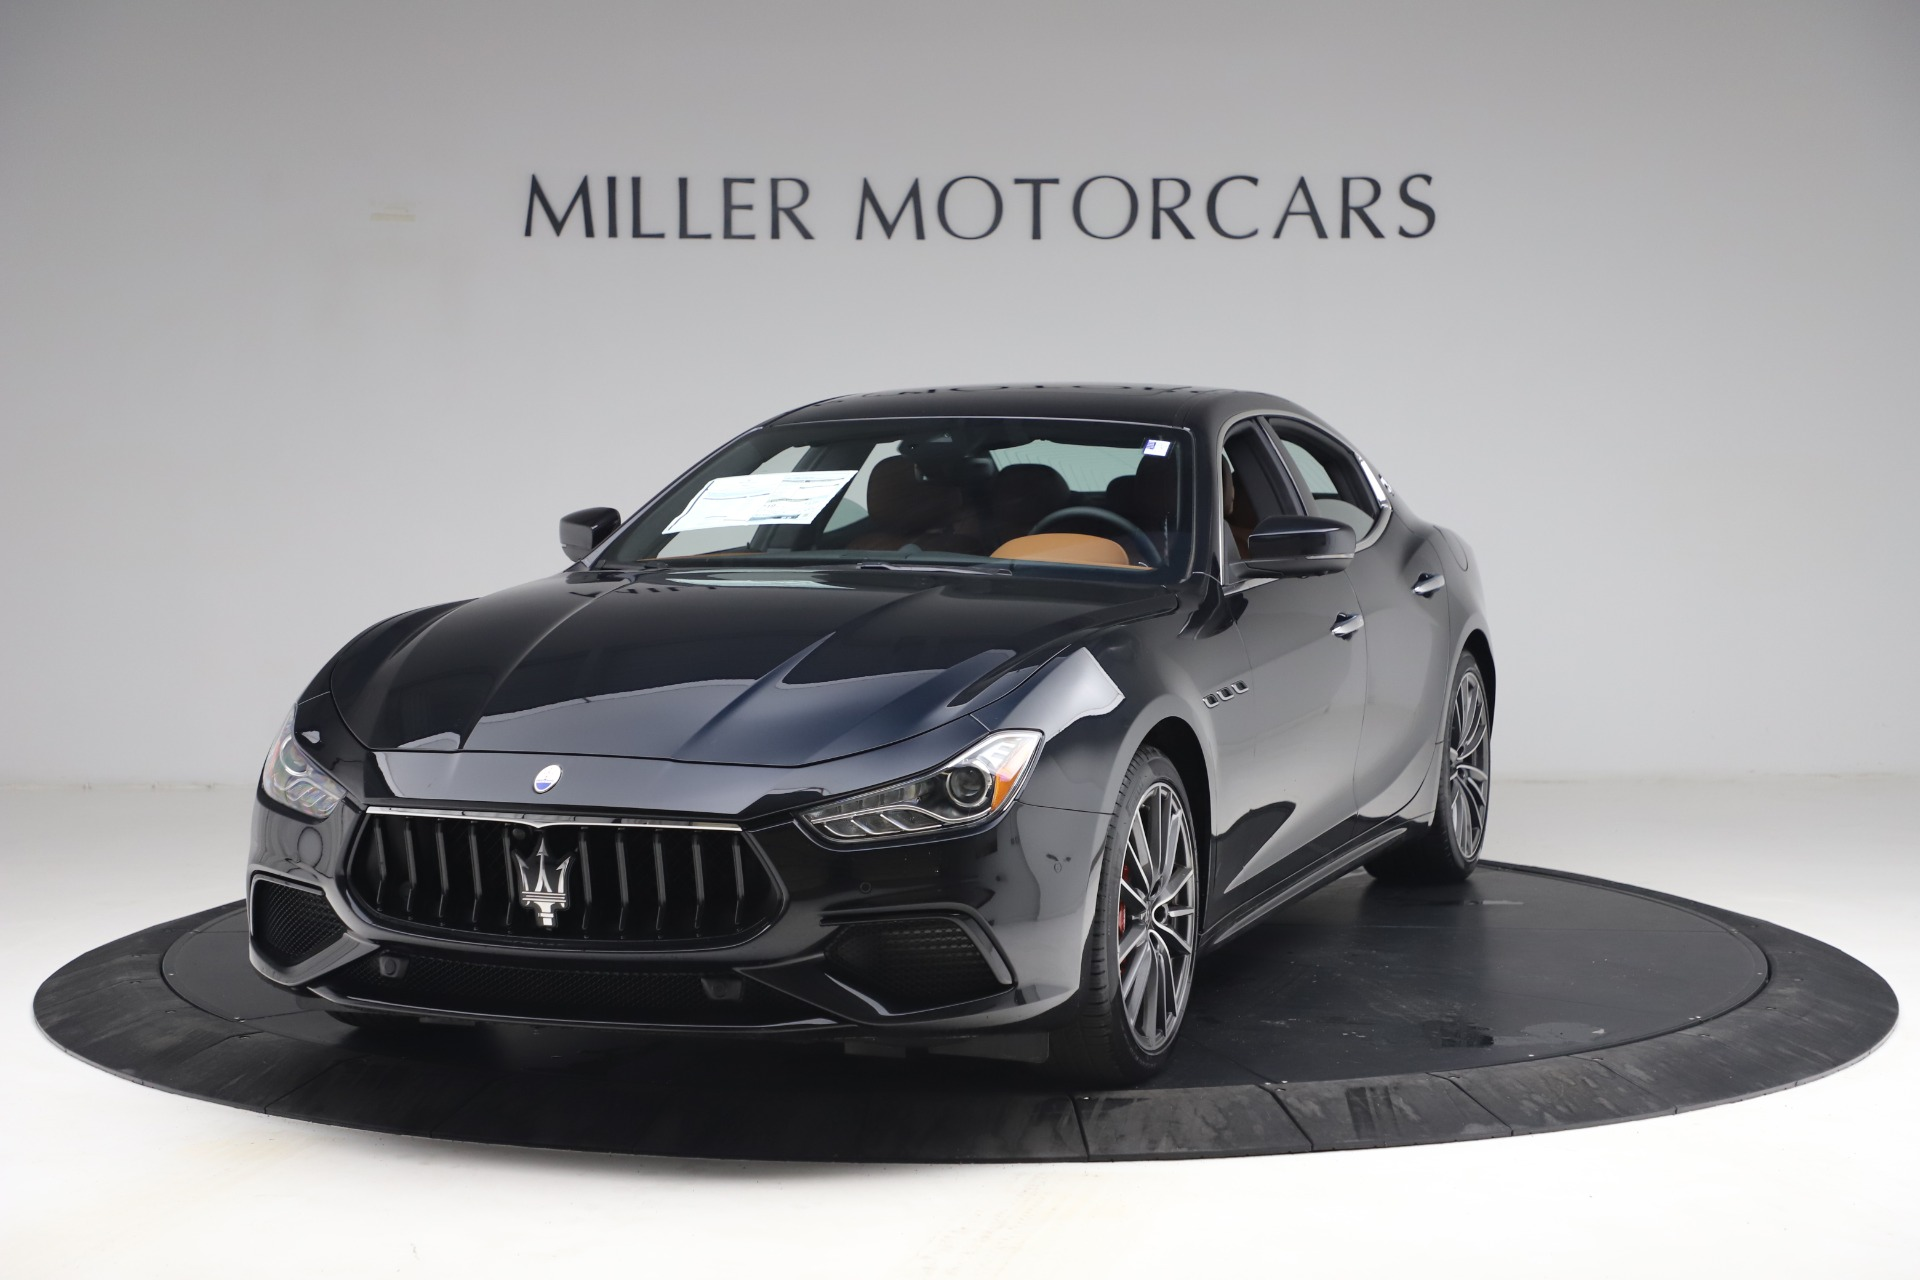 New 2021 Maserati Ghibli S Q4 for sale Call for price at Pagani of Greenwich in Greenwich CT 06830 1